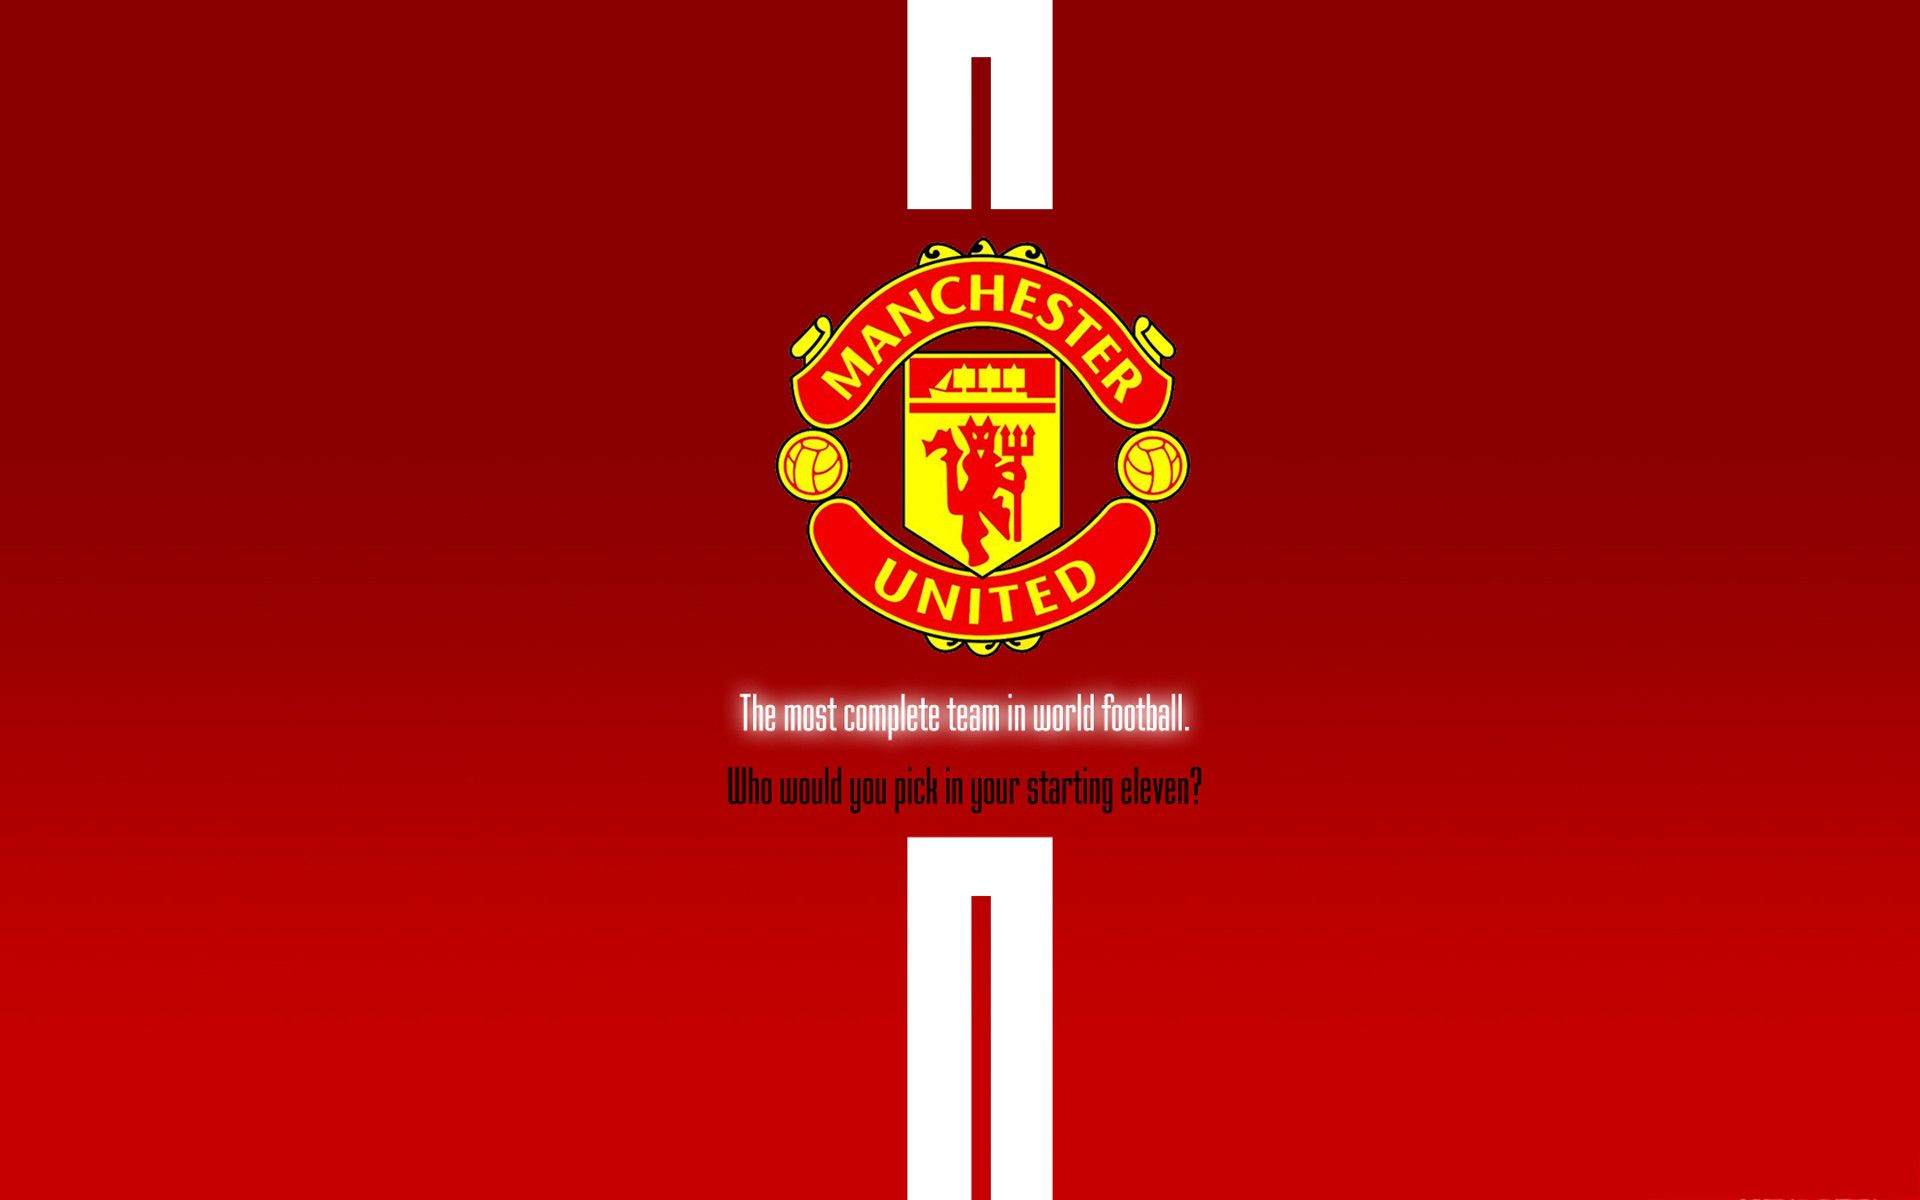 Manchester United Wallpapers Mobile Epic Wallpaperz 1920x1200